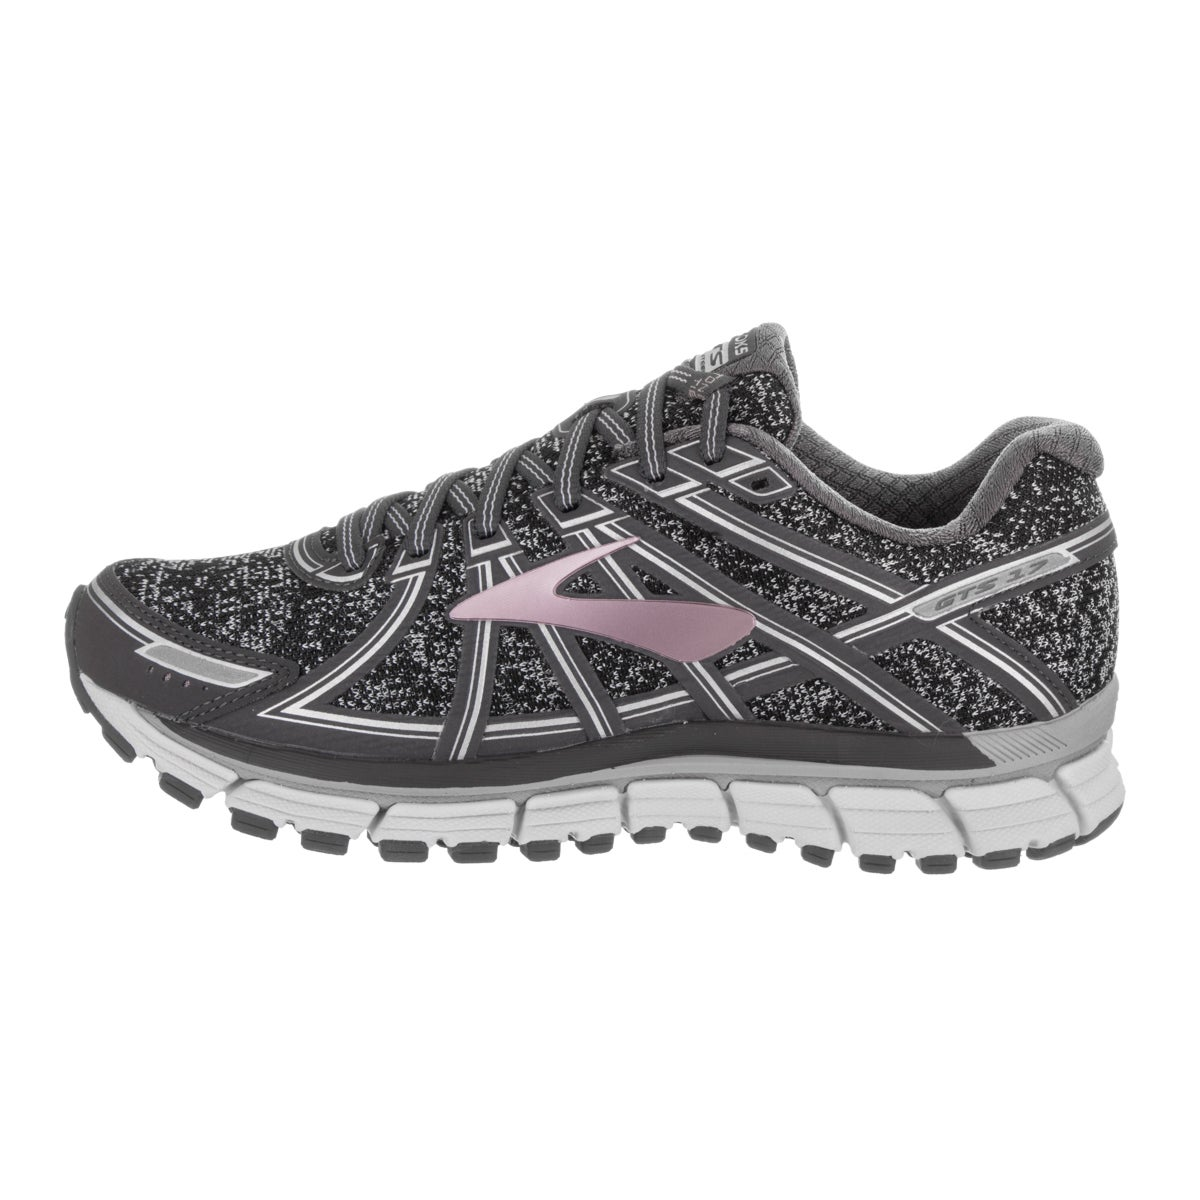 d629c5ccf7b42 Shop Brooks Women s Adrenaline GTS 17 Running Shoe - Free Shipping Today -  Overstock - 16850392